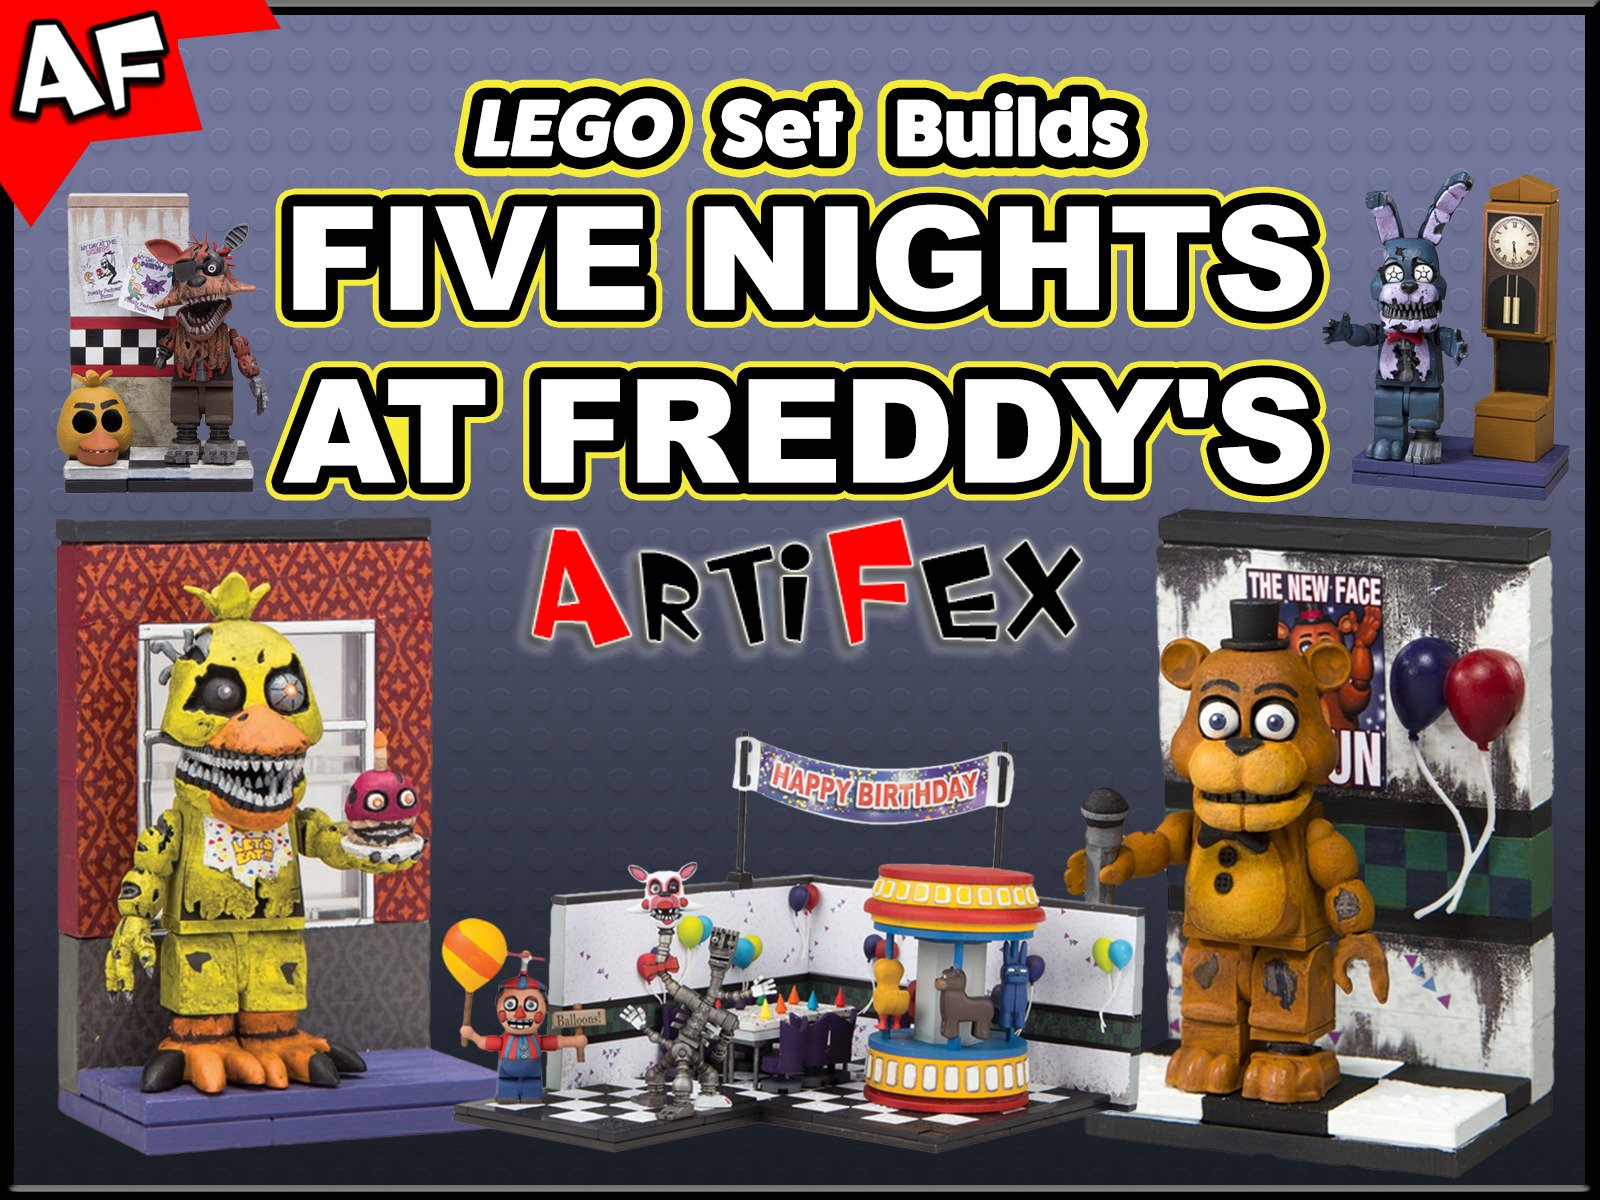 Clip: Lego Set Builds Five Nights at Freddy's - Season 1